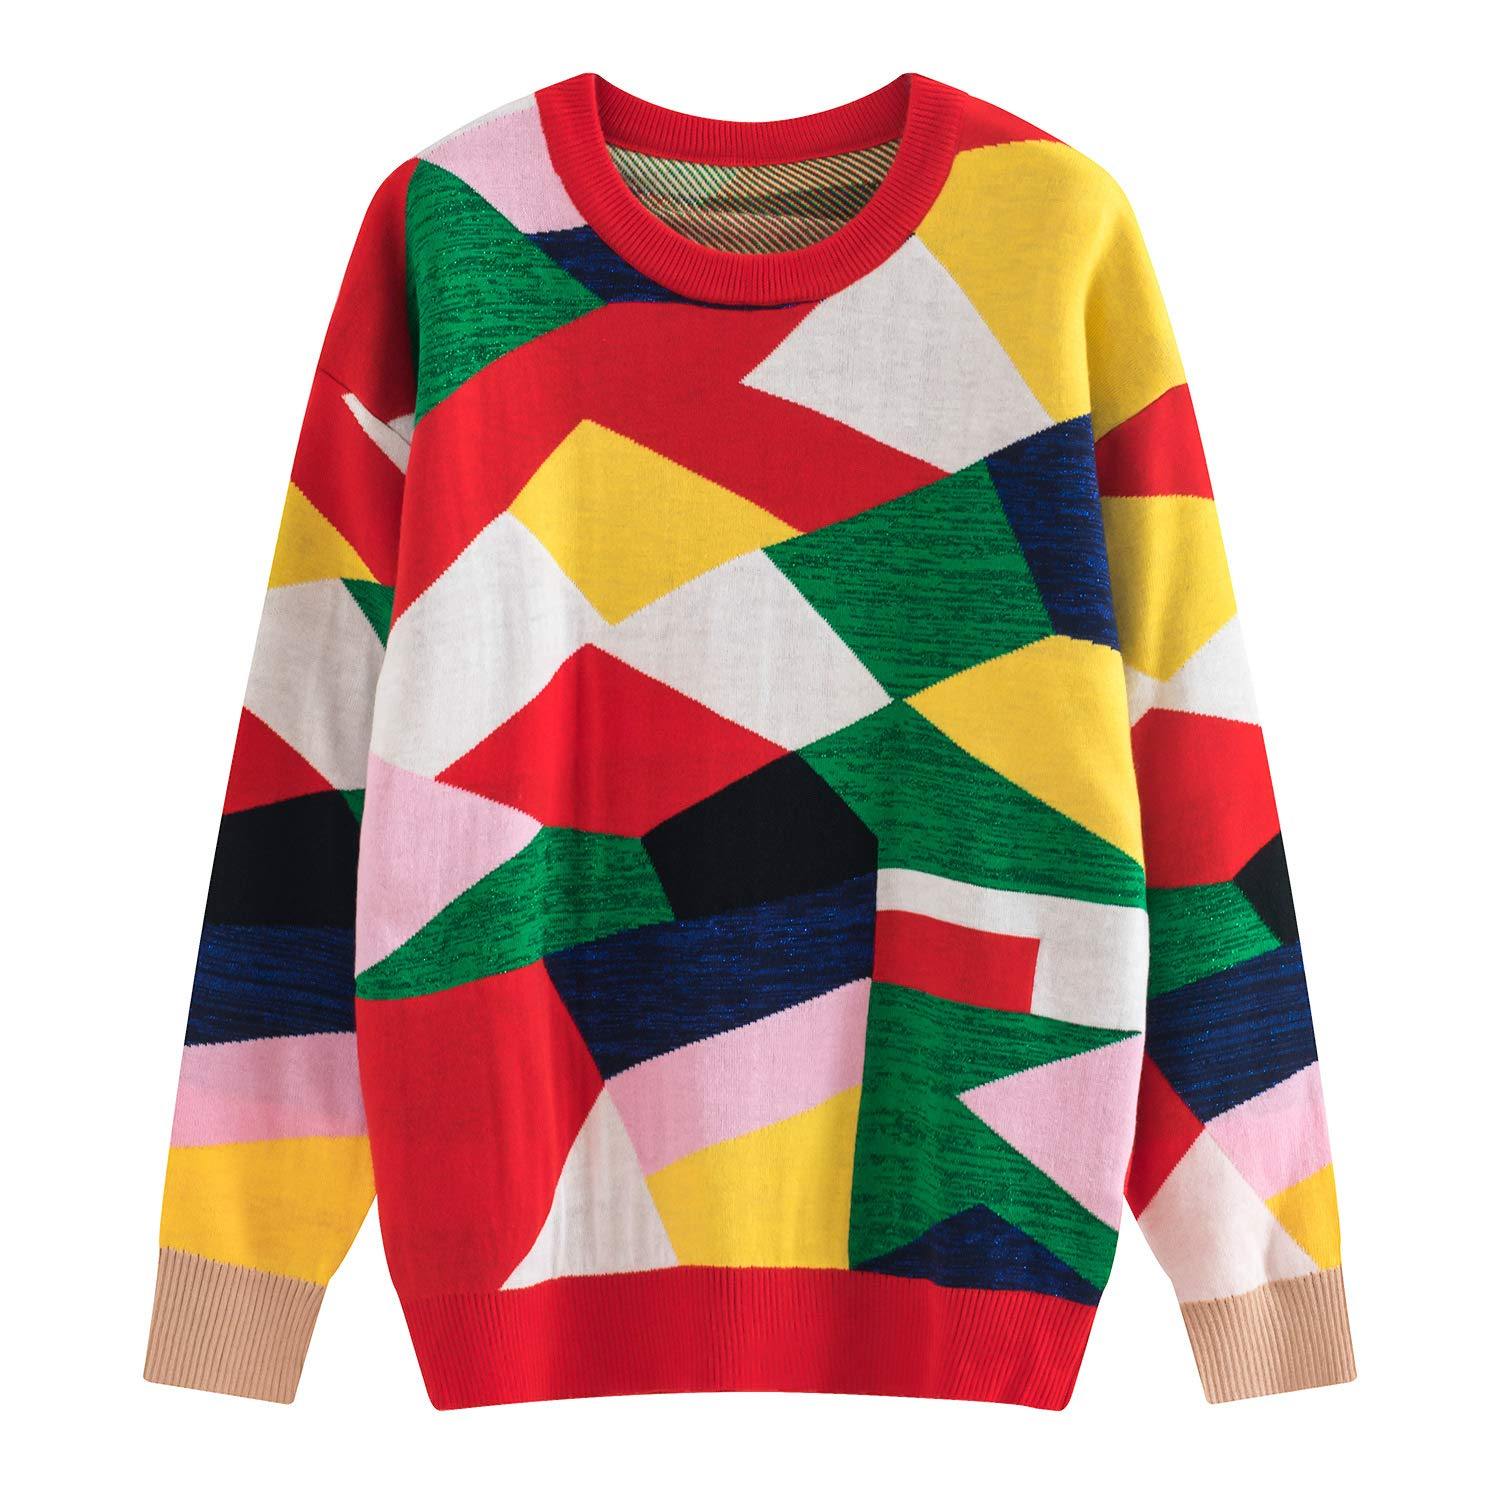 JIAKENVDE Winter Stream Collision Farbe Jigsaw Puzzle Geometric Piece Figure Round Neck Pullover Knit Sweater Female Y